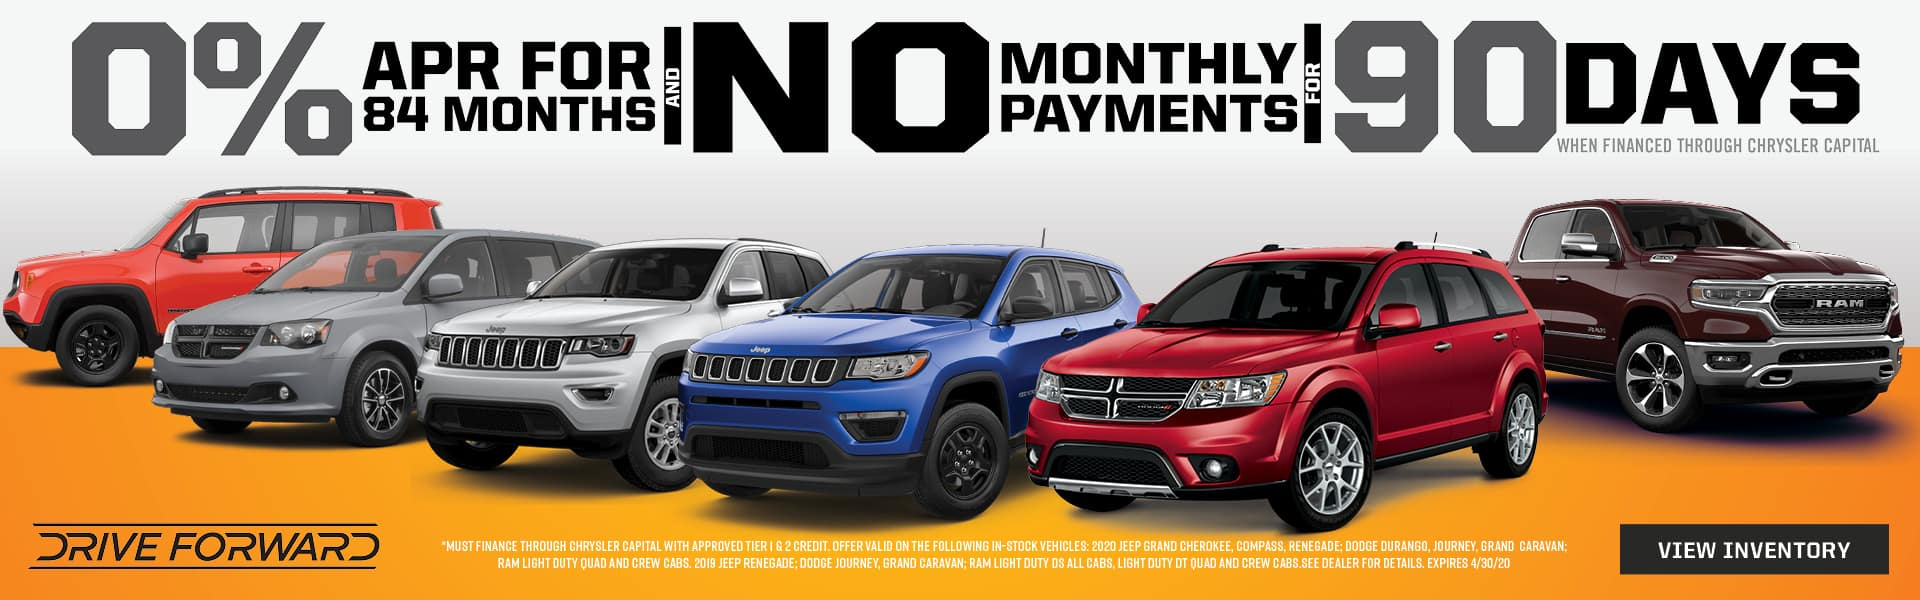 0% Financing for 84 months at Shively Motors of Shippensburg